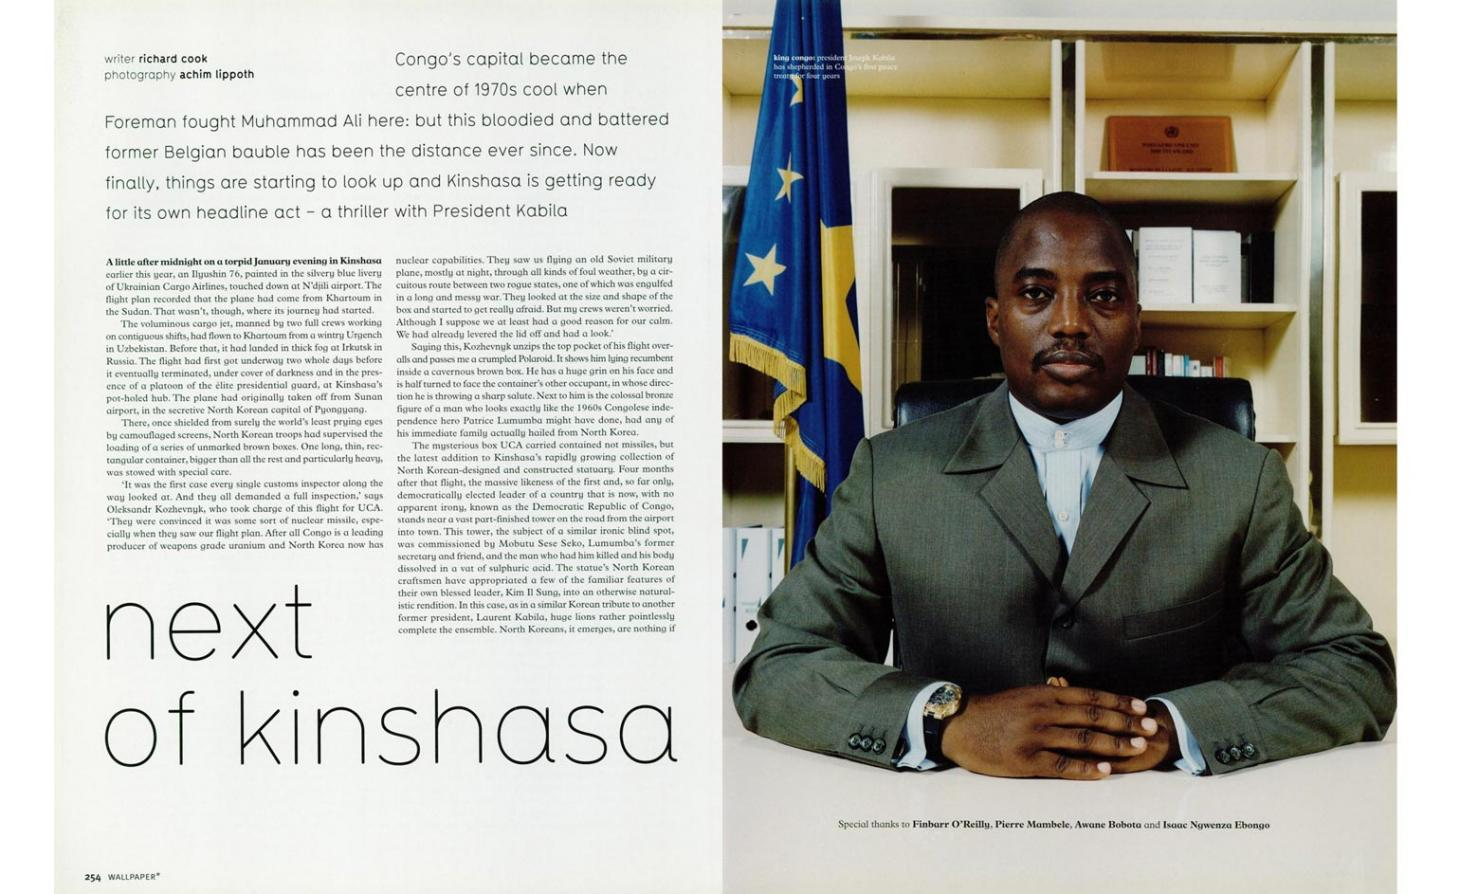 magazine spread of an interview with Joseph Kabala